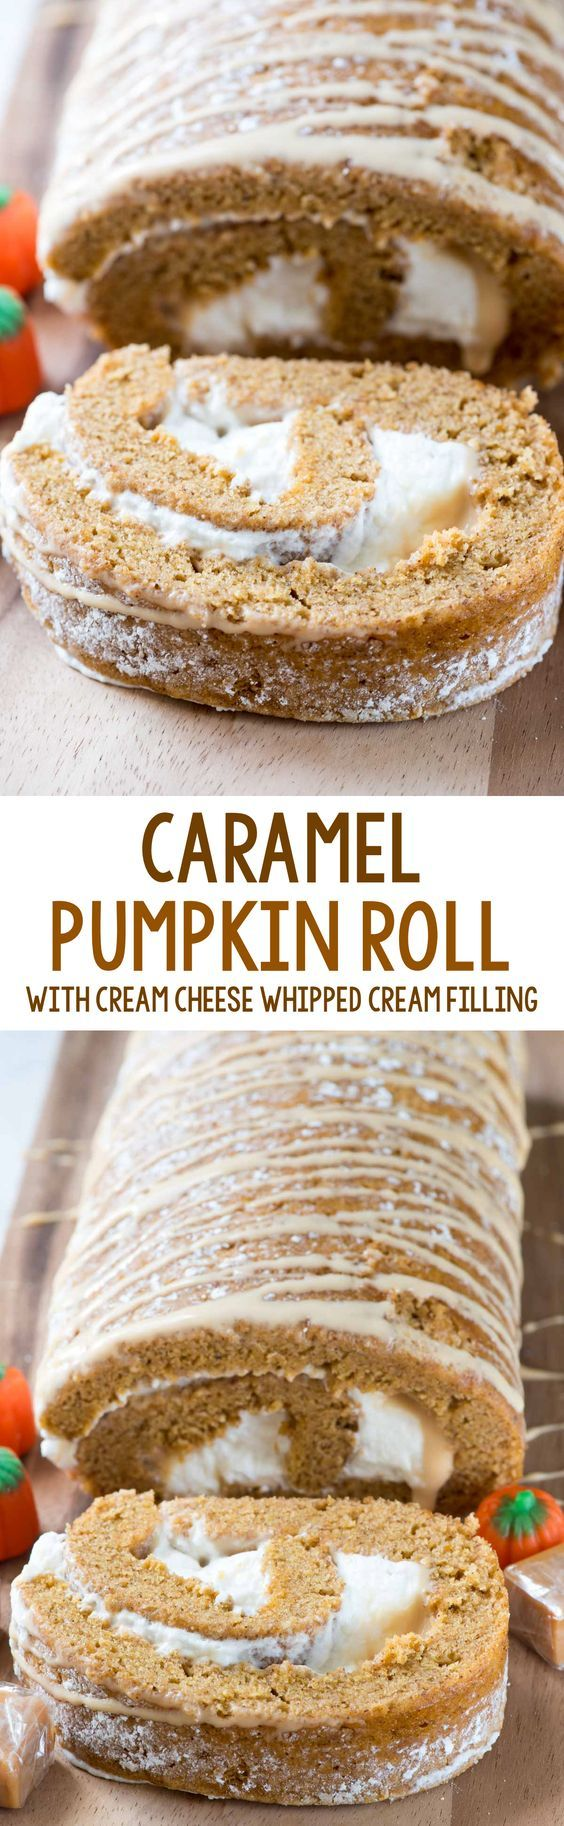 Caramel Pumpkin Roll - this easy pumpkin roll recipe is filled with caramel ganache and cream cheese whipped cream. It's your favorite pumpkin roll recipe with a twist!